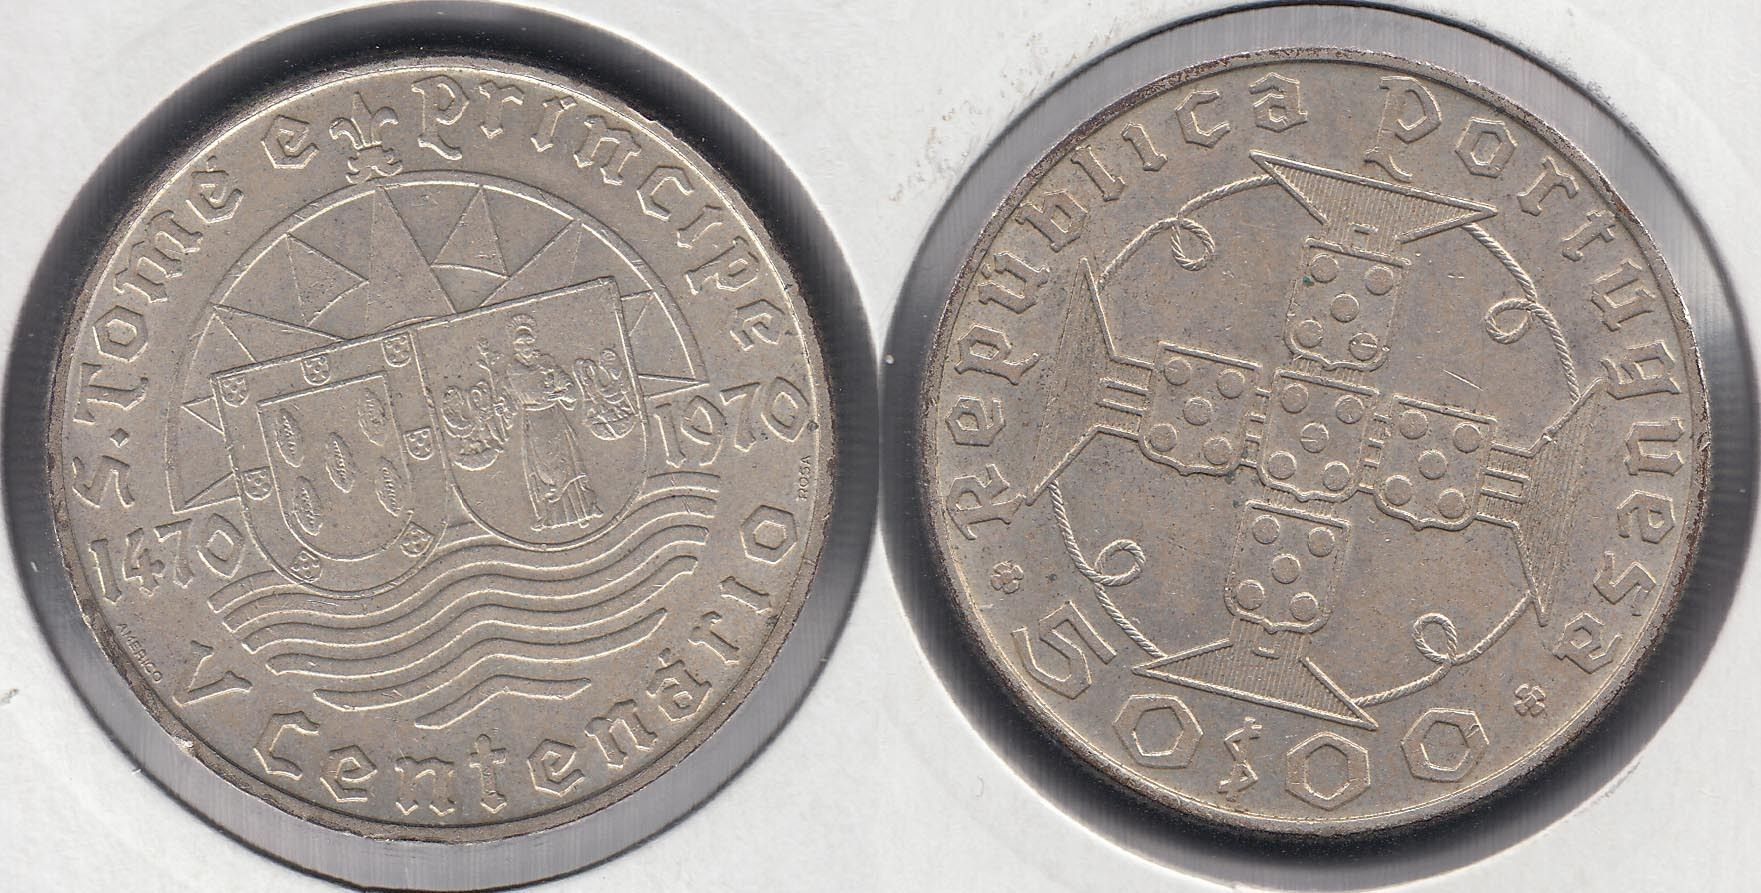 SAINT THOMAS AND PRINCE. 50 ESCUDOS DE 1970. PLATA 0.650.